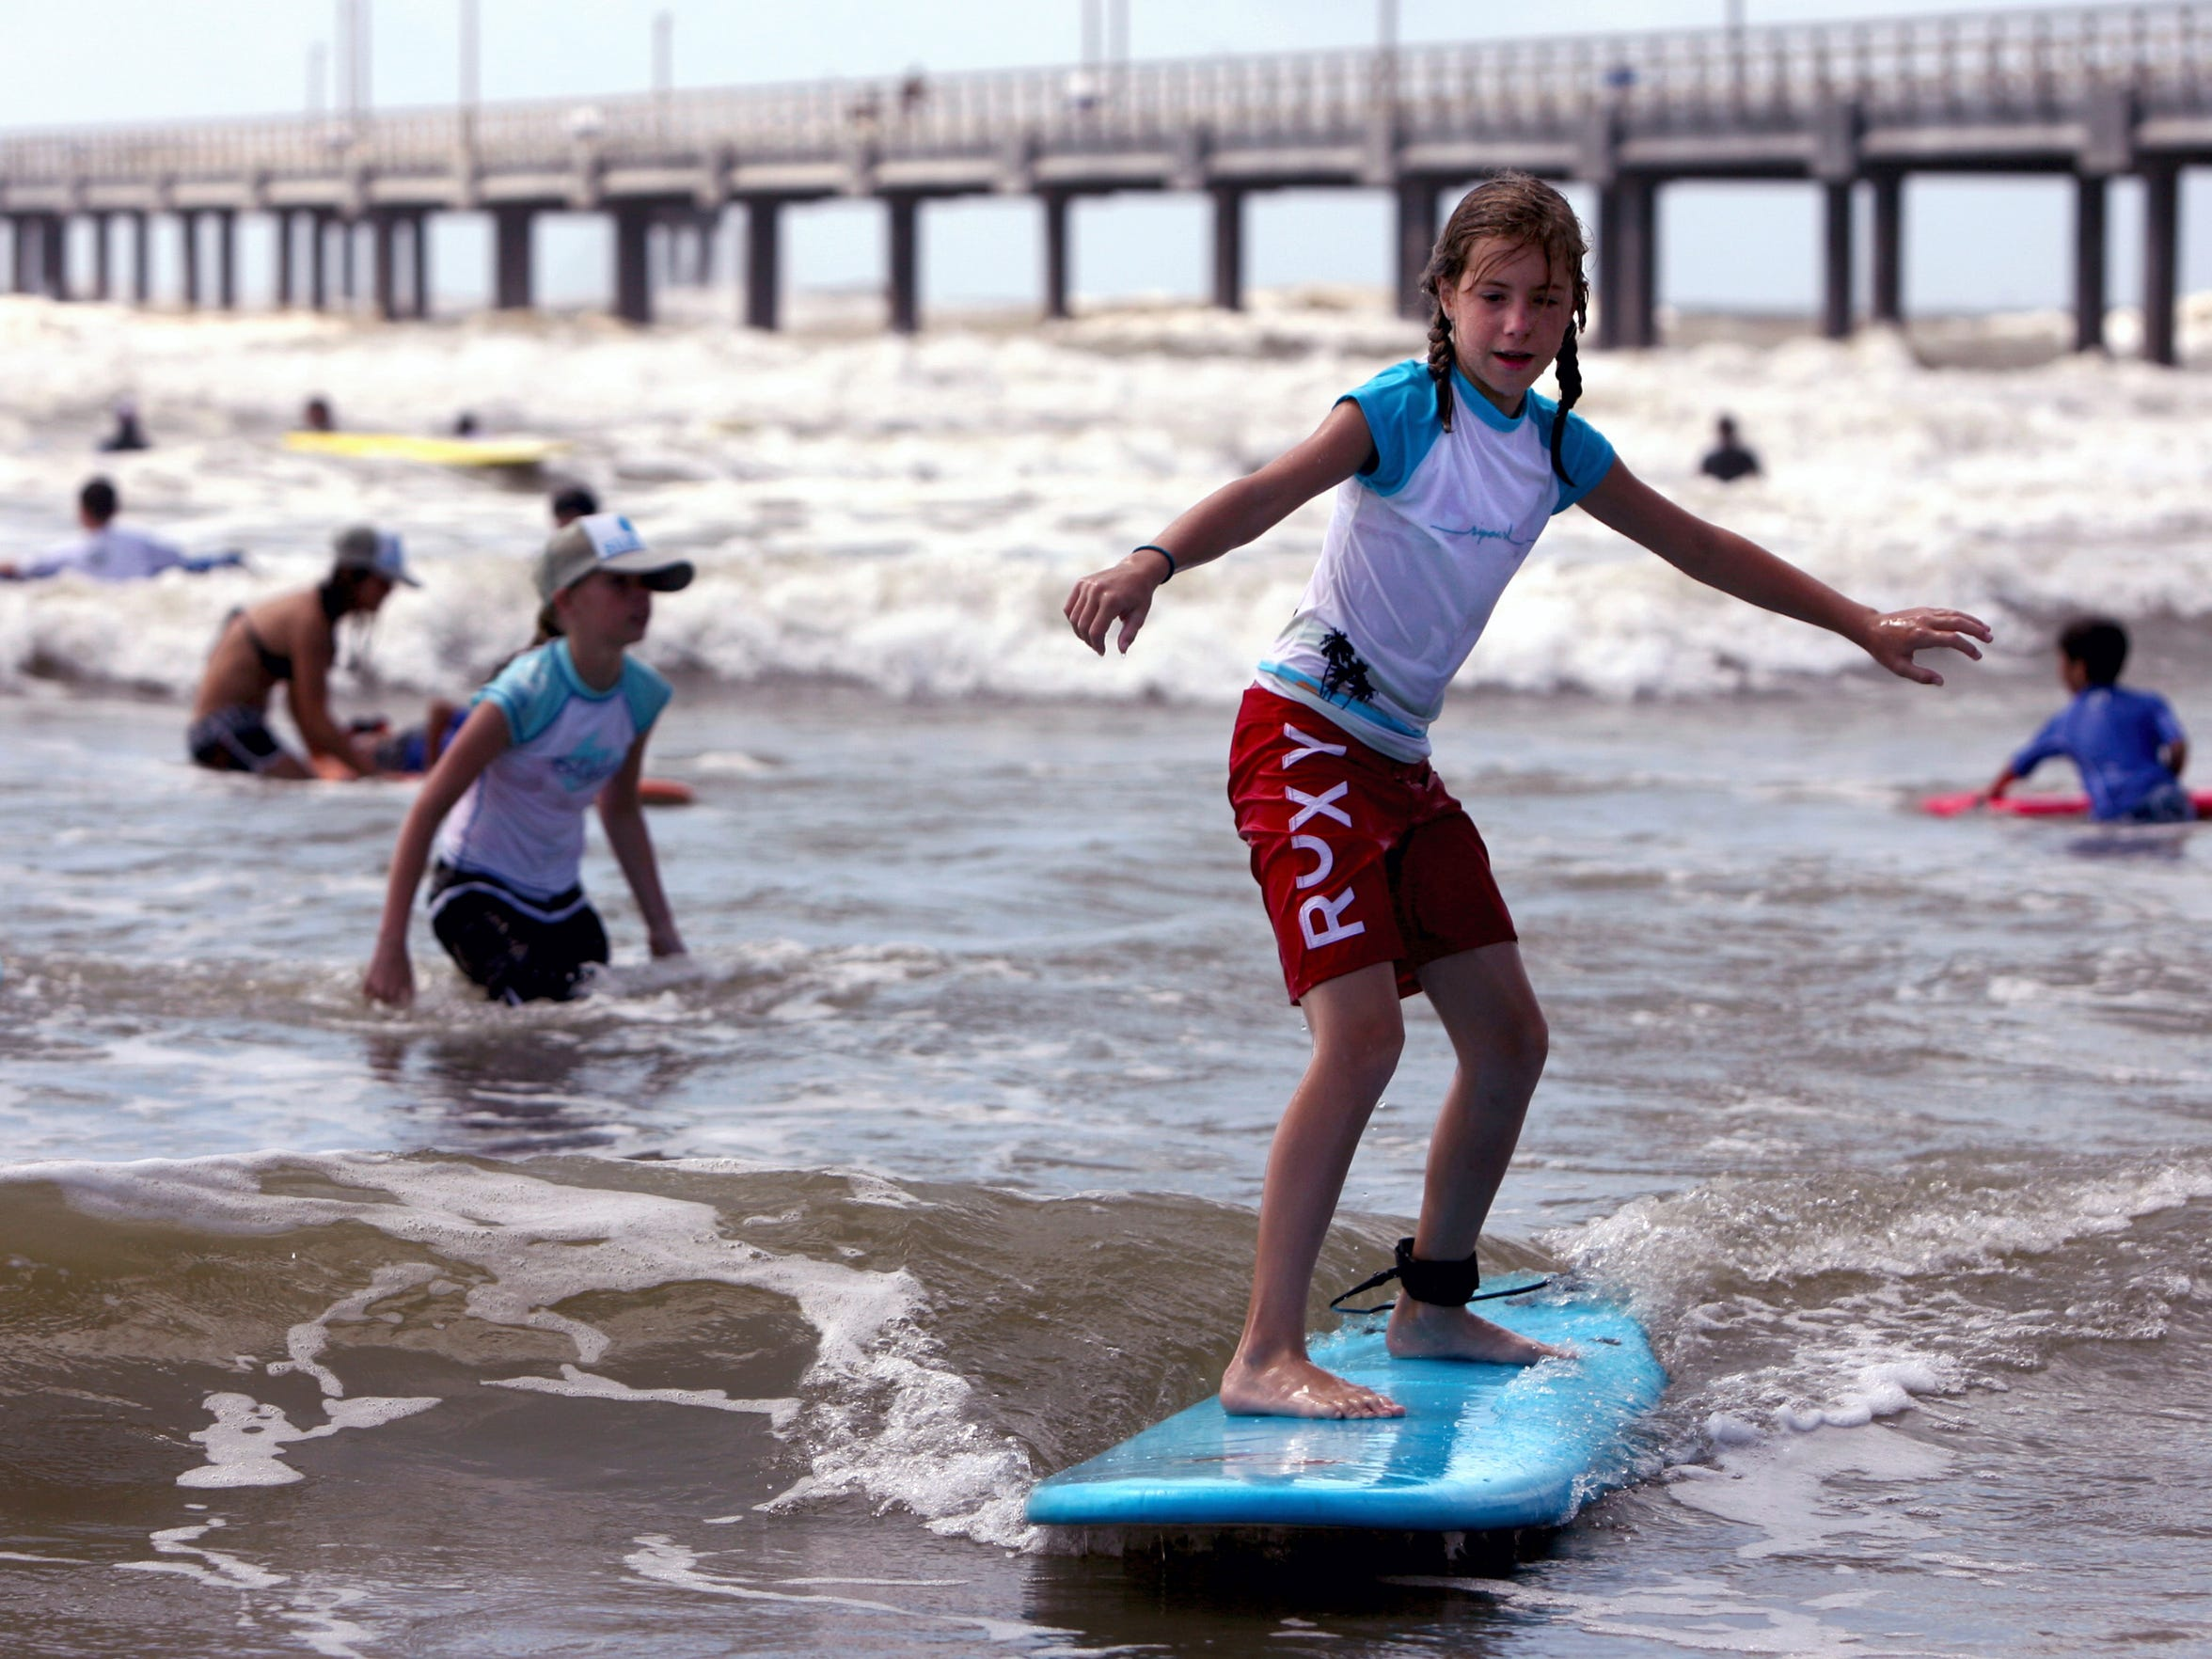 Texas Surf Camps offers weekly surfing camps through